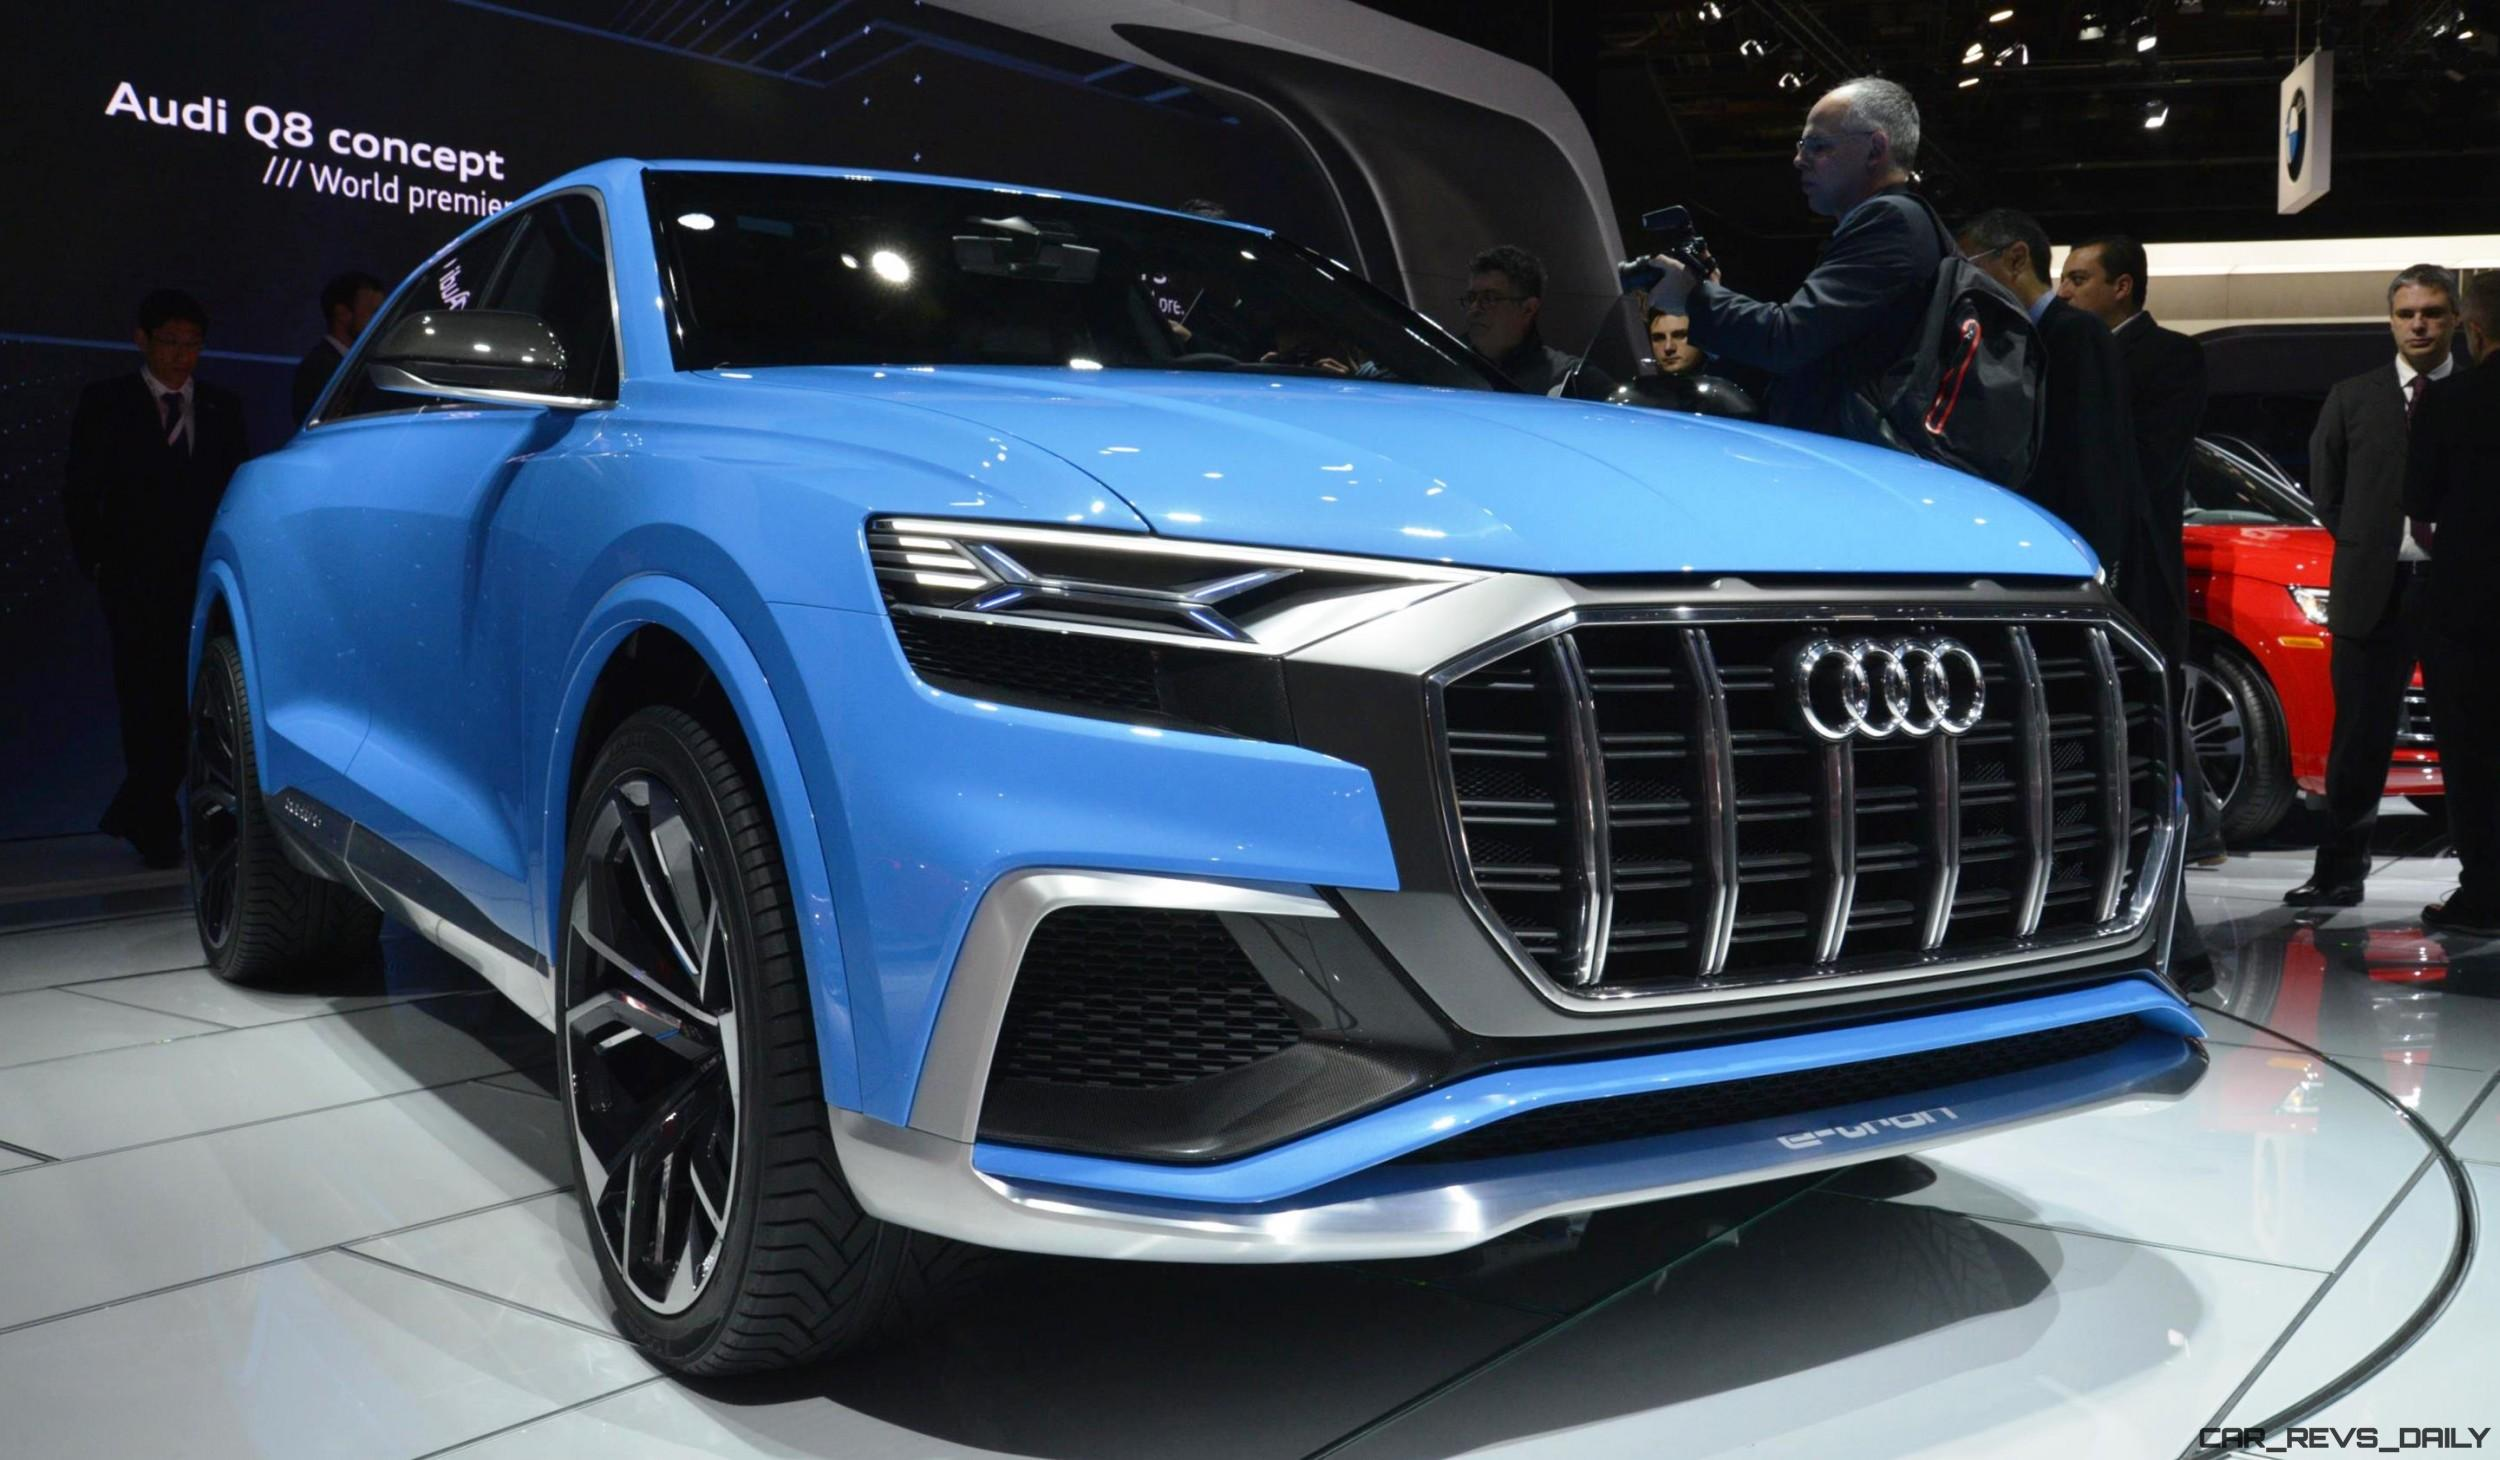 2017 Audi Q8 Concept Near Production SUV Limo Shows Face in Detroit